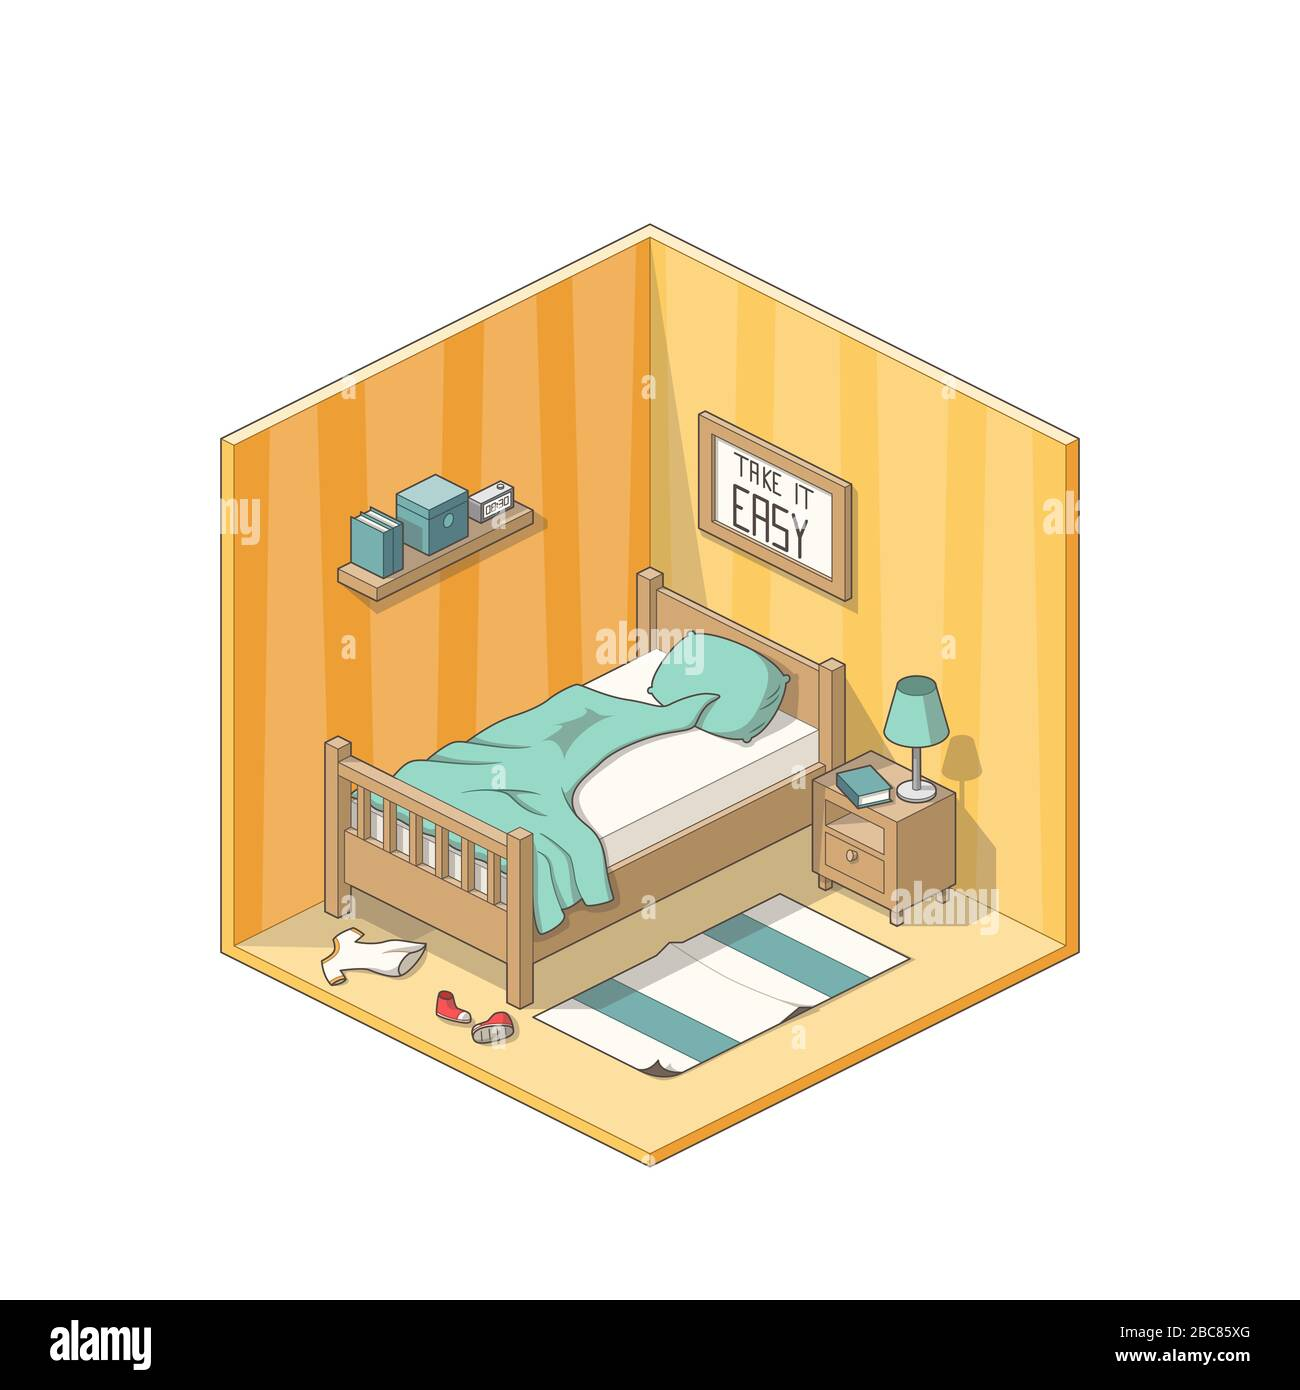 Isometric Bedroom With Bed Cupboard And Other Furniture Vector Illustration With Separate Layers Stock Vector Image Art Alamy